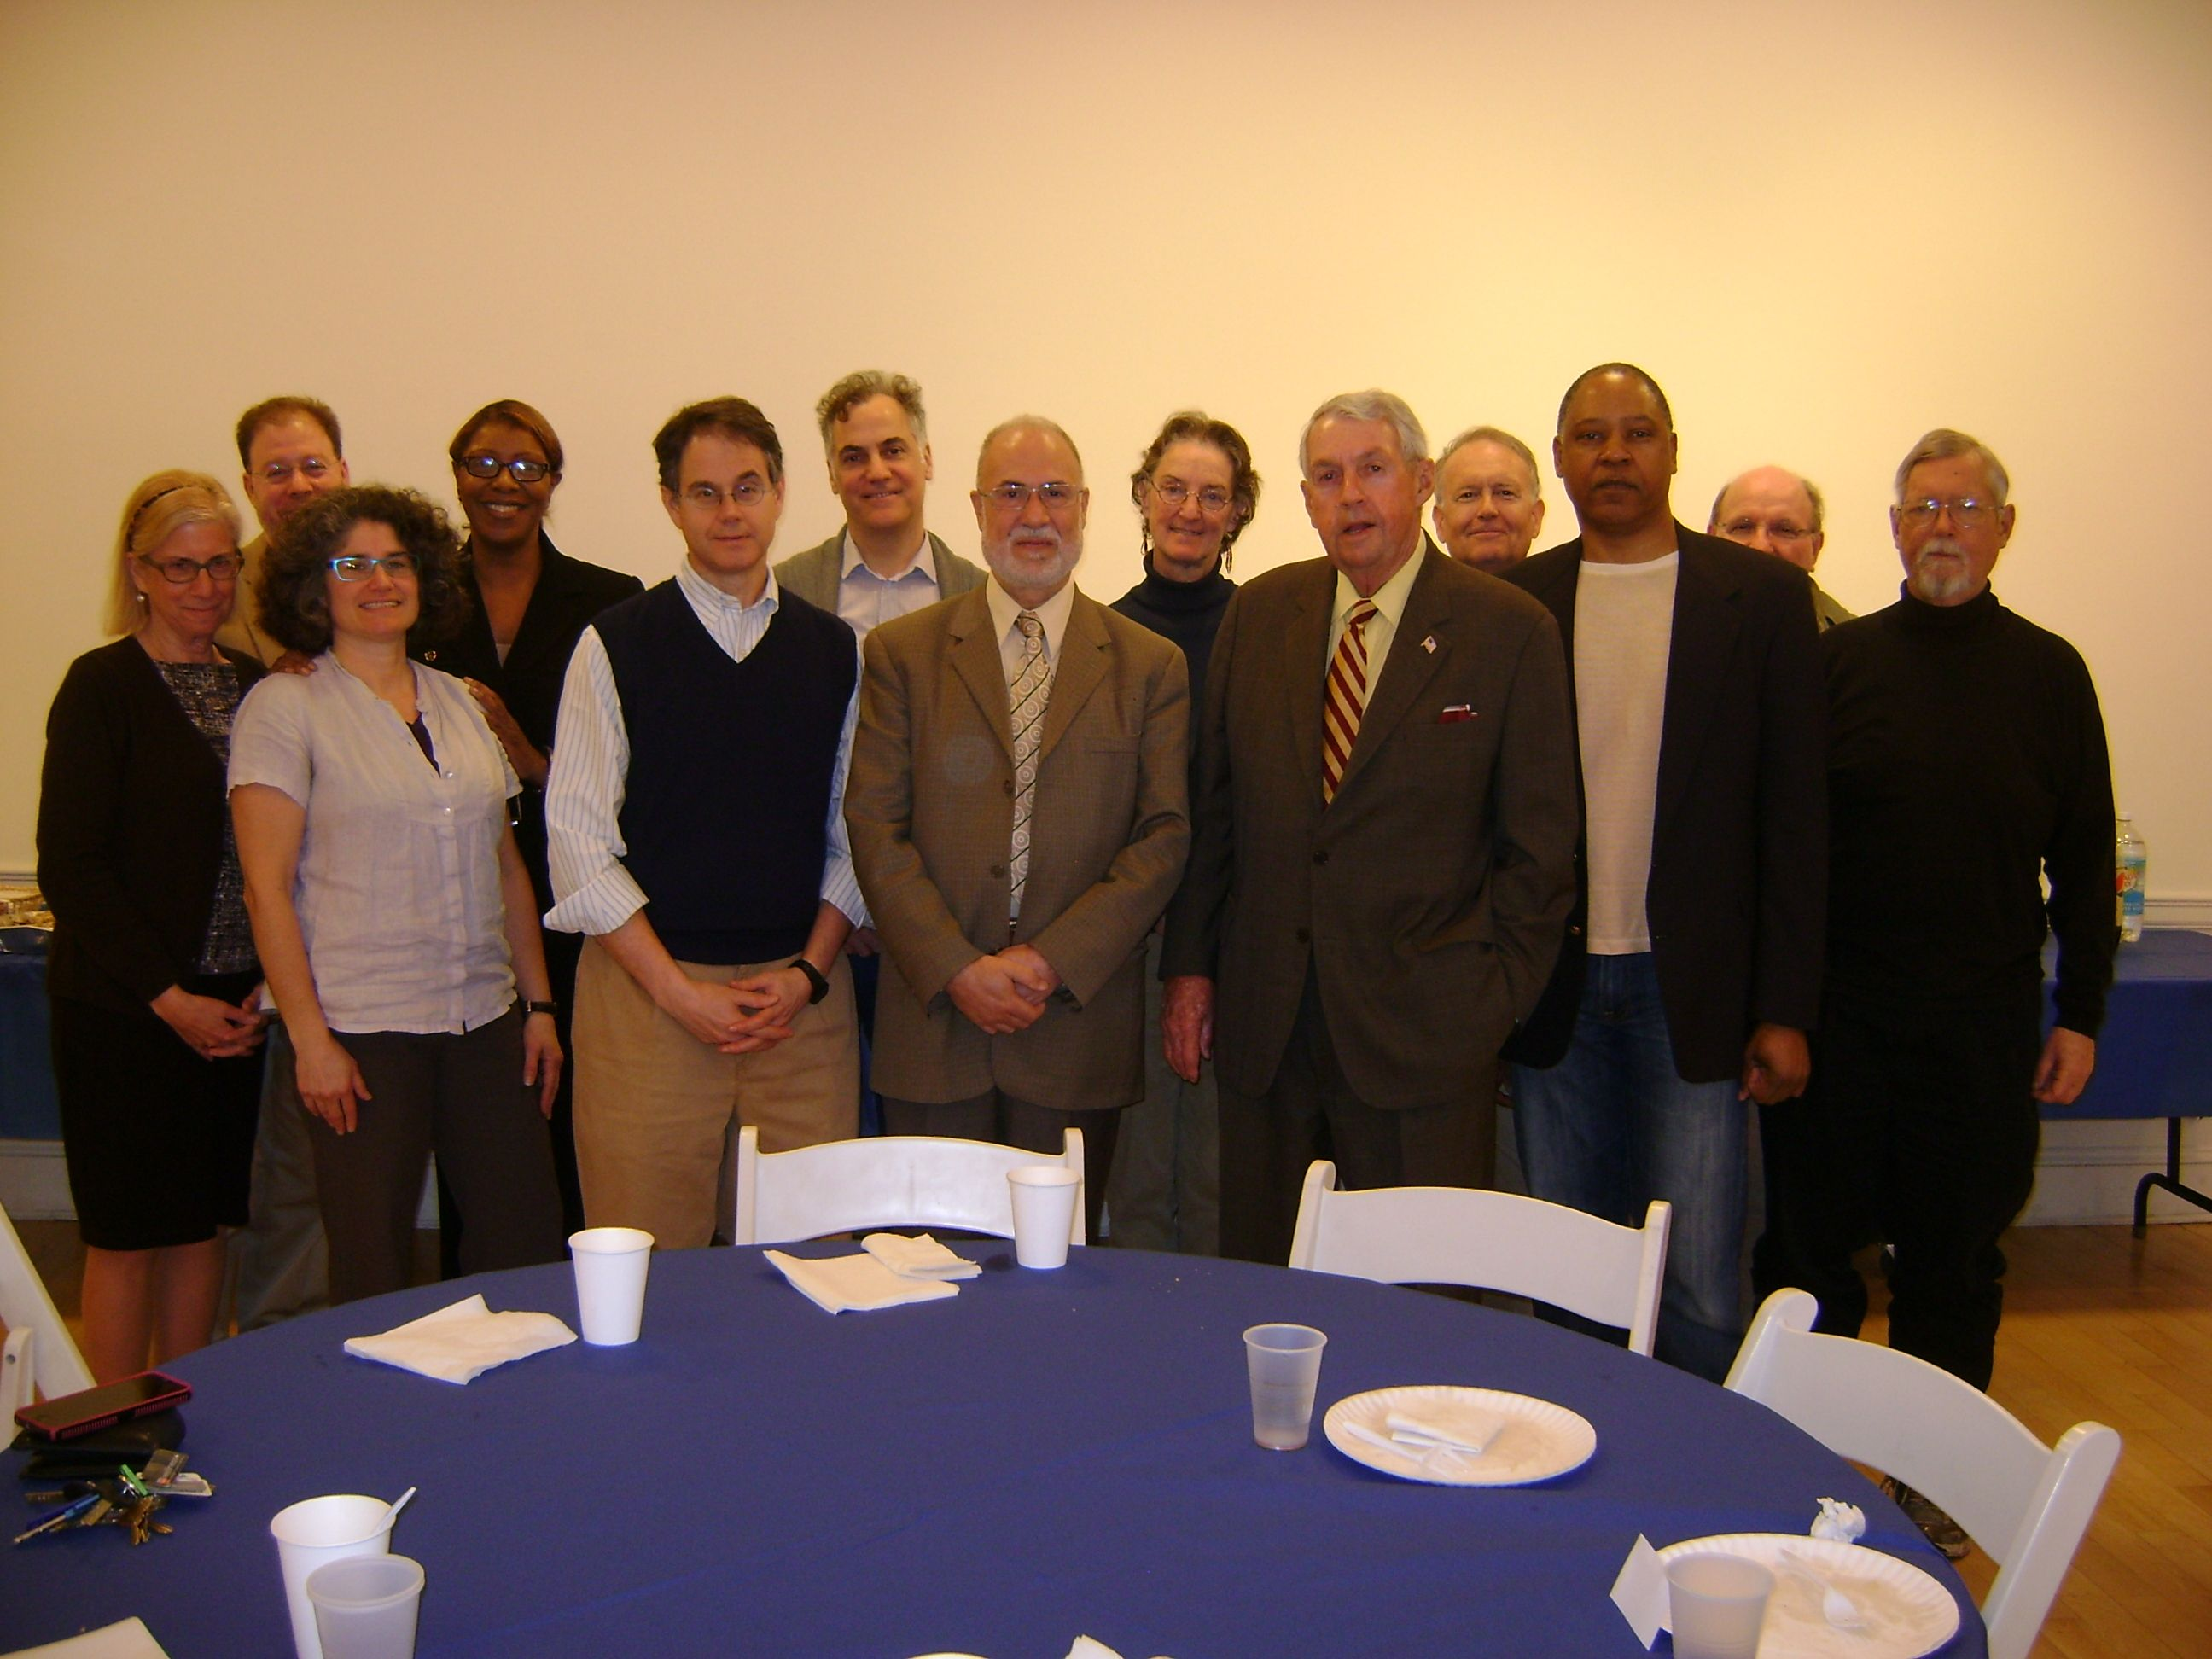 DA Hynes met with Brooklyn Heights clergy members and guests